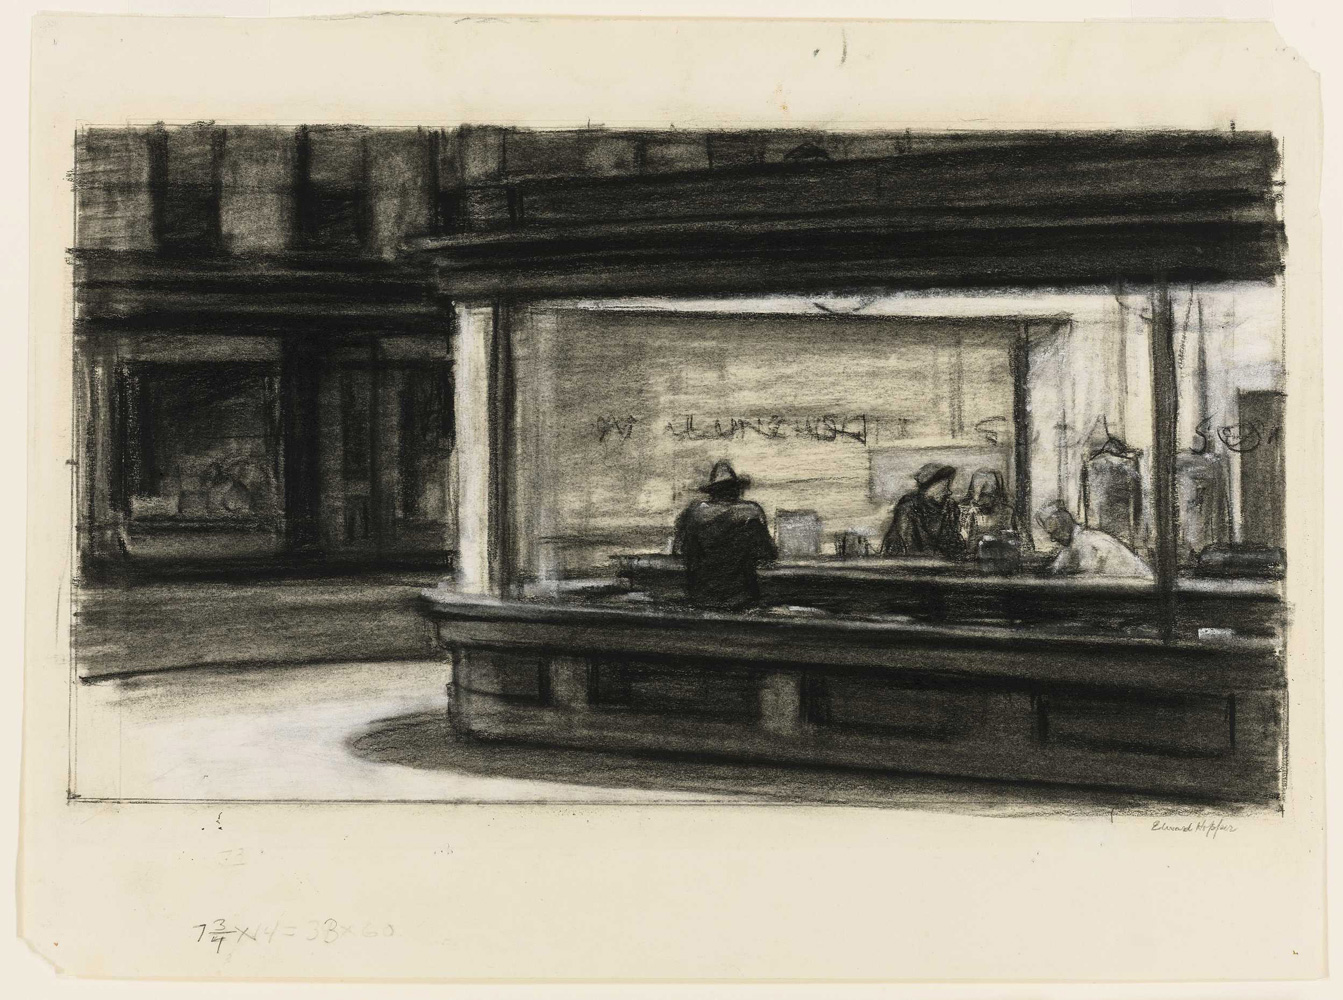 EDWARD HOPPER (1882 - 1967)